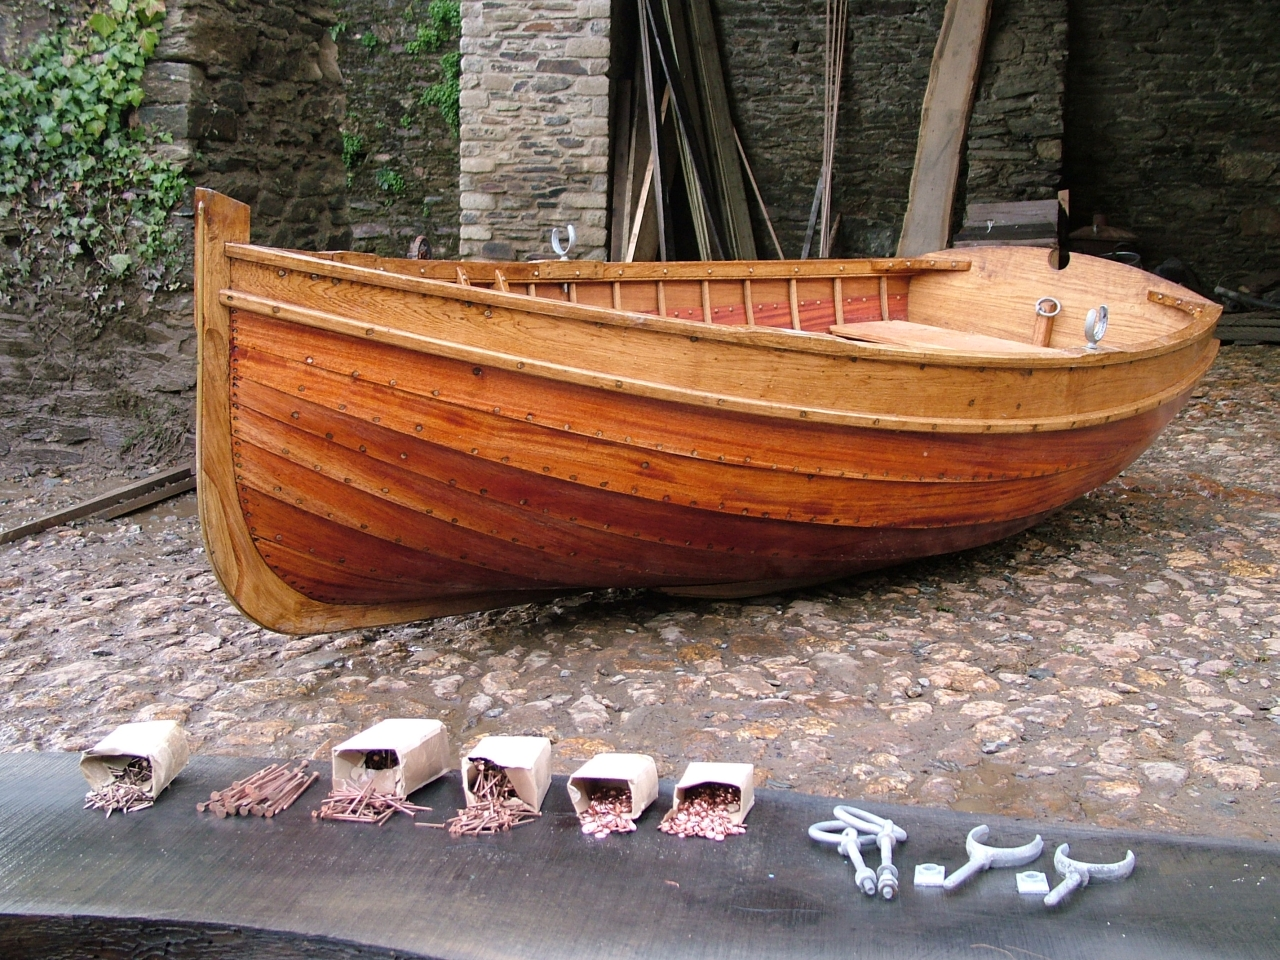 Build Dinghies And Learn Boatbuilding With Stirling Son